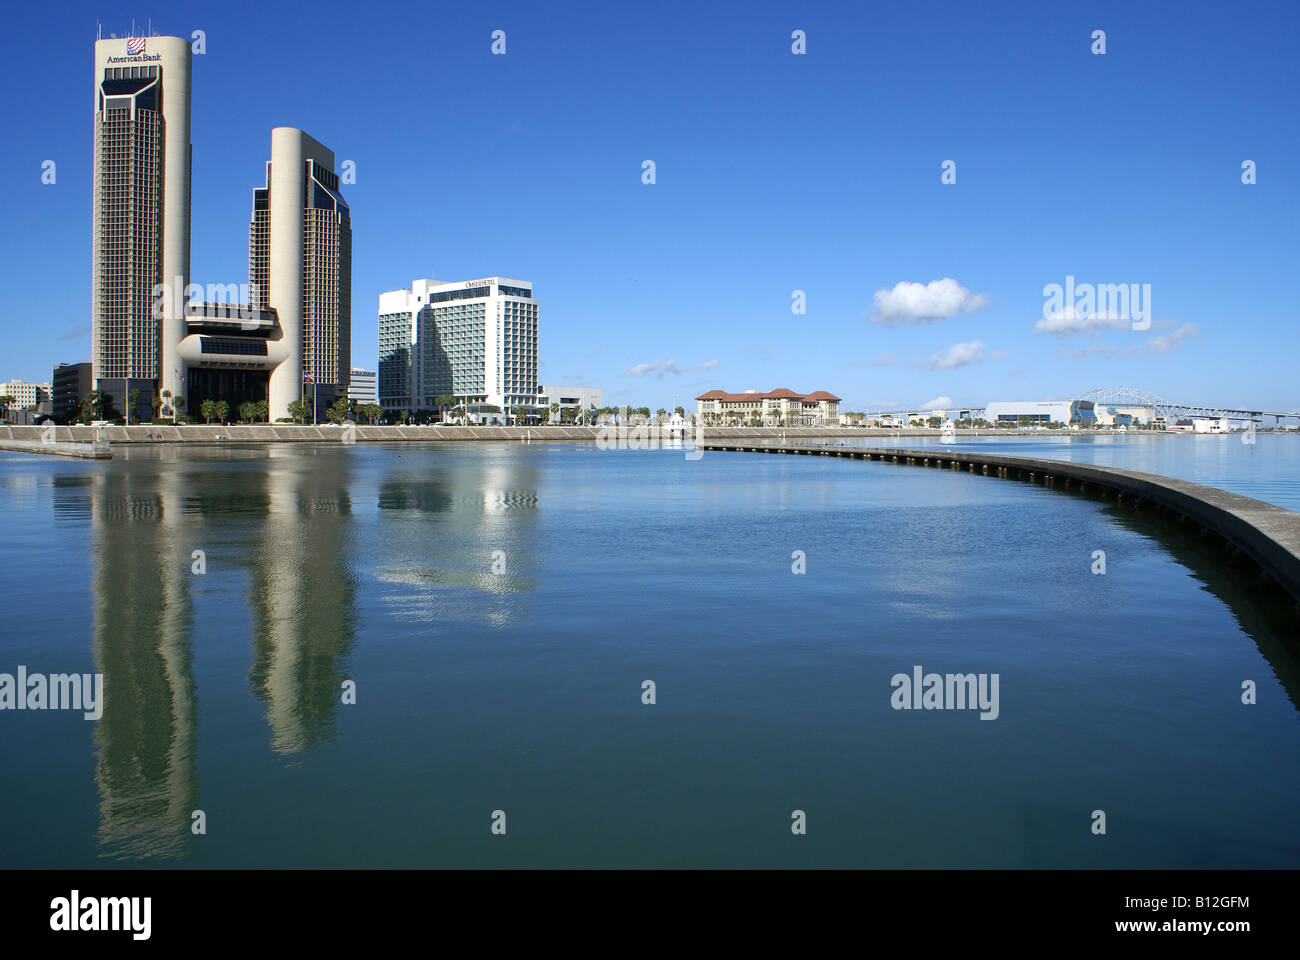 Corpus Christi Texas Water In Front Of City Skyline Stock Photo Royalty Free Image 17881912